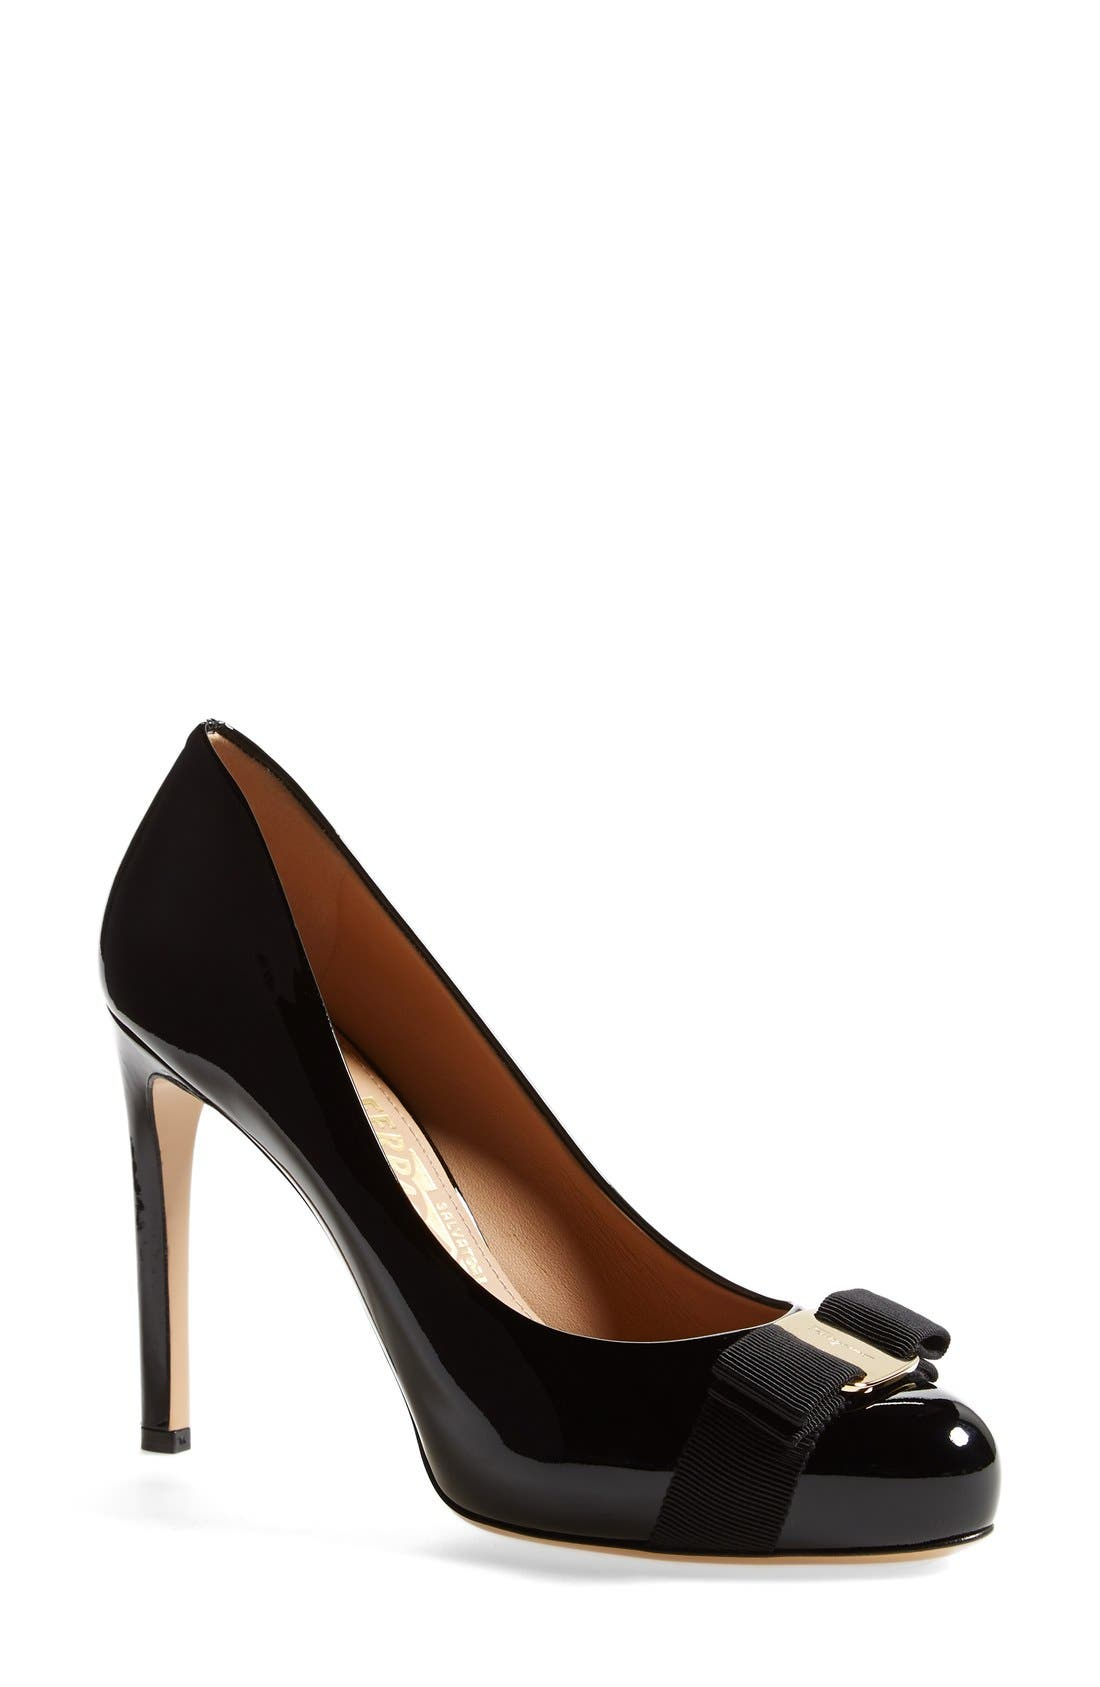 Alternate Image 1 Selected - Salvatore Ferragamo Rounded Toe Bow Pump (Women)